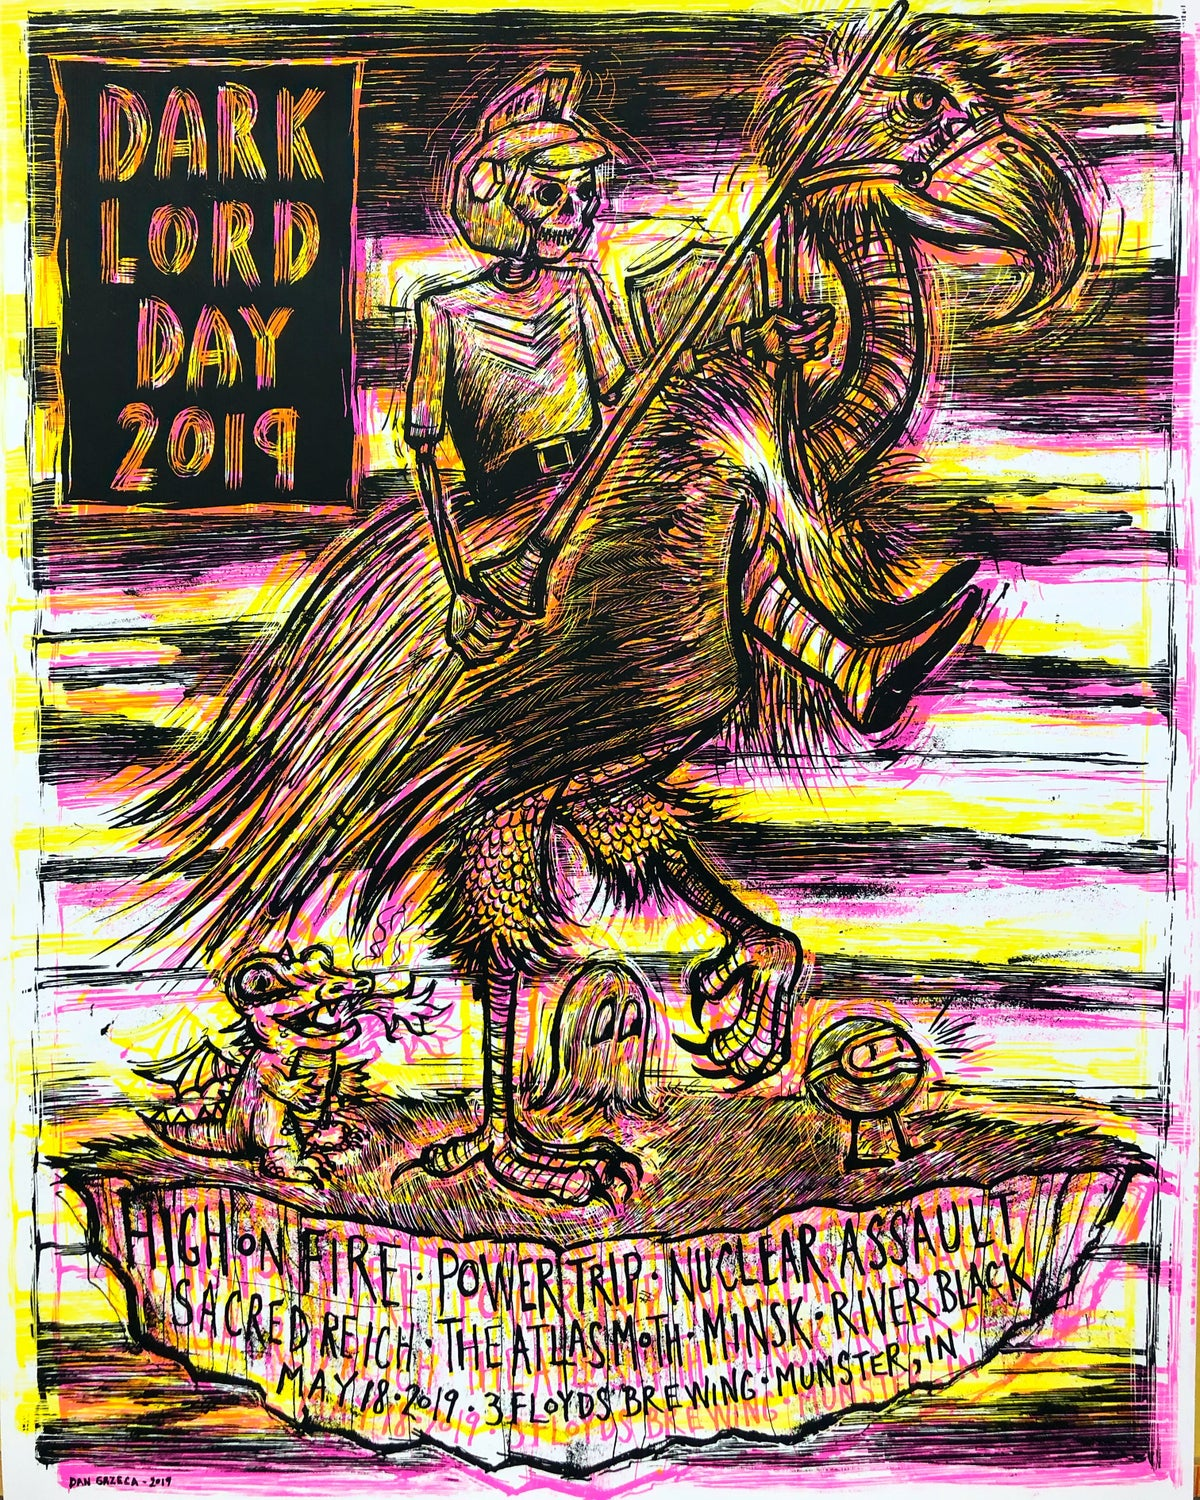 2019 Dark Lord Day poster